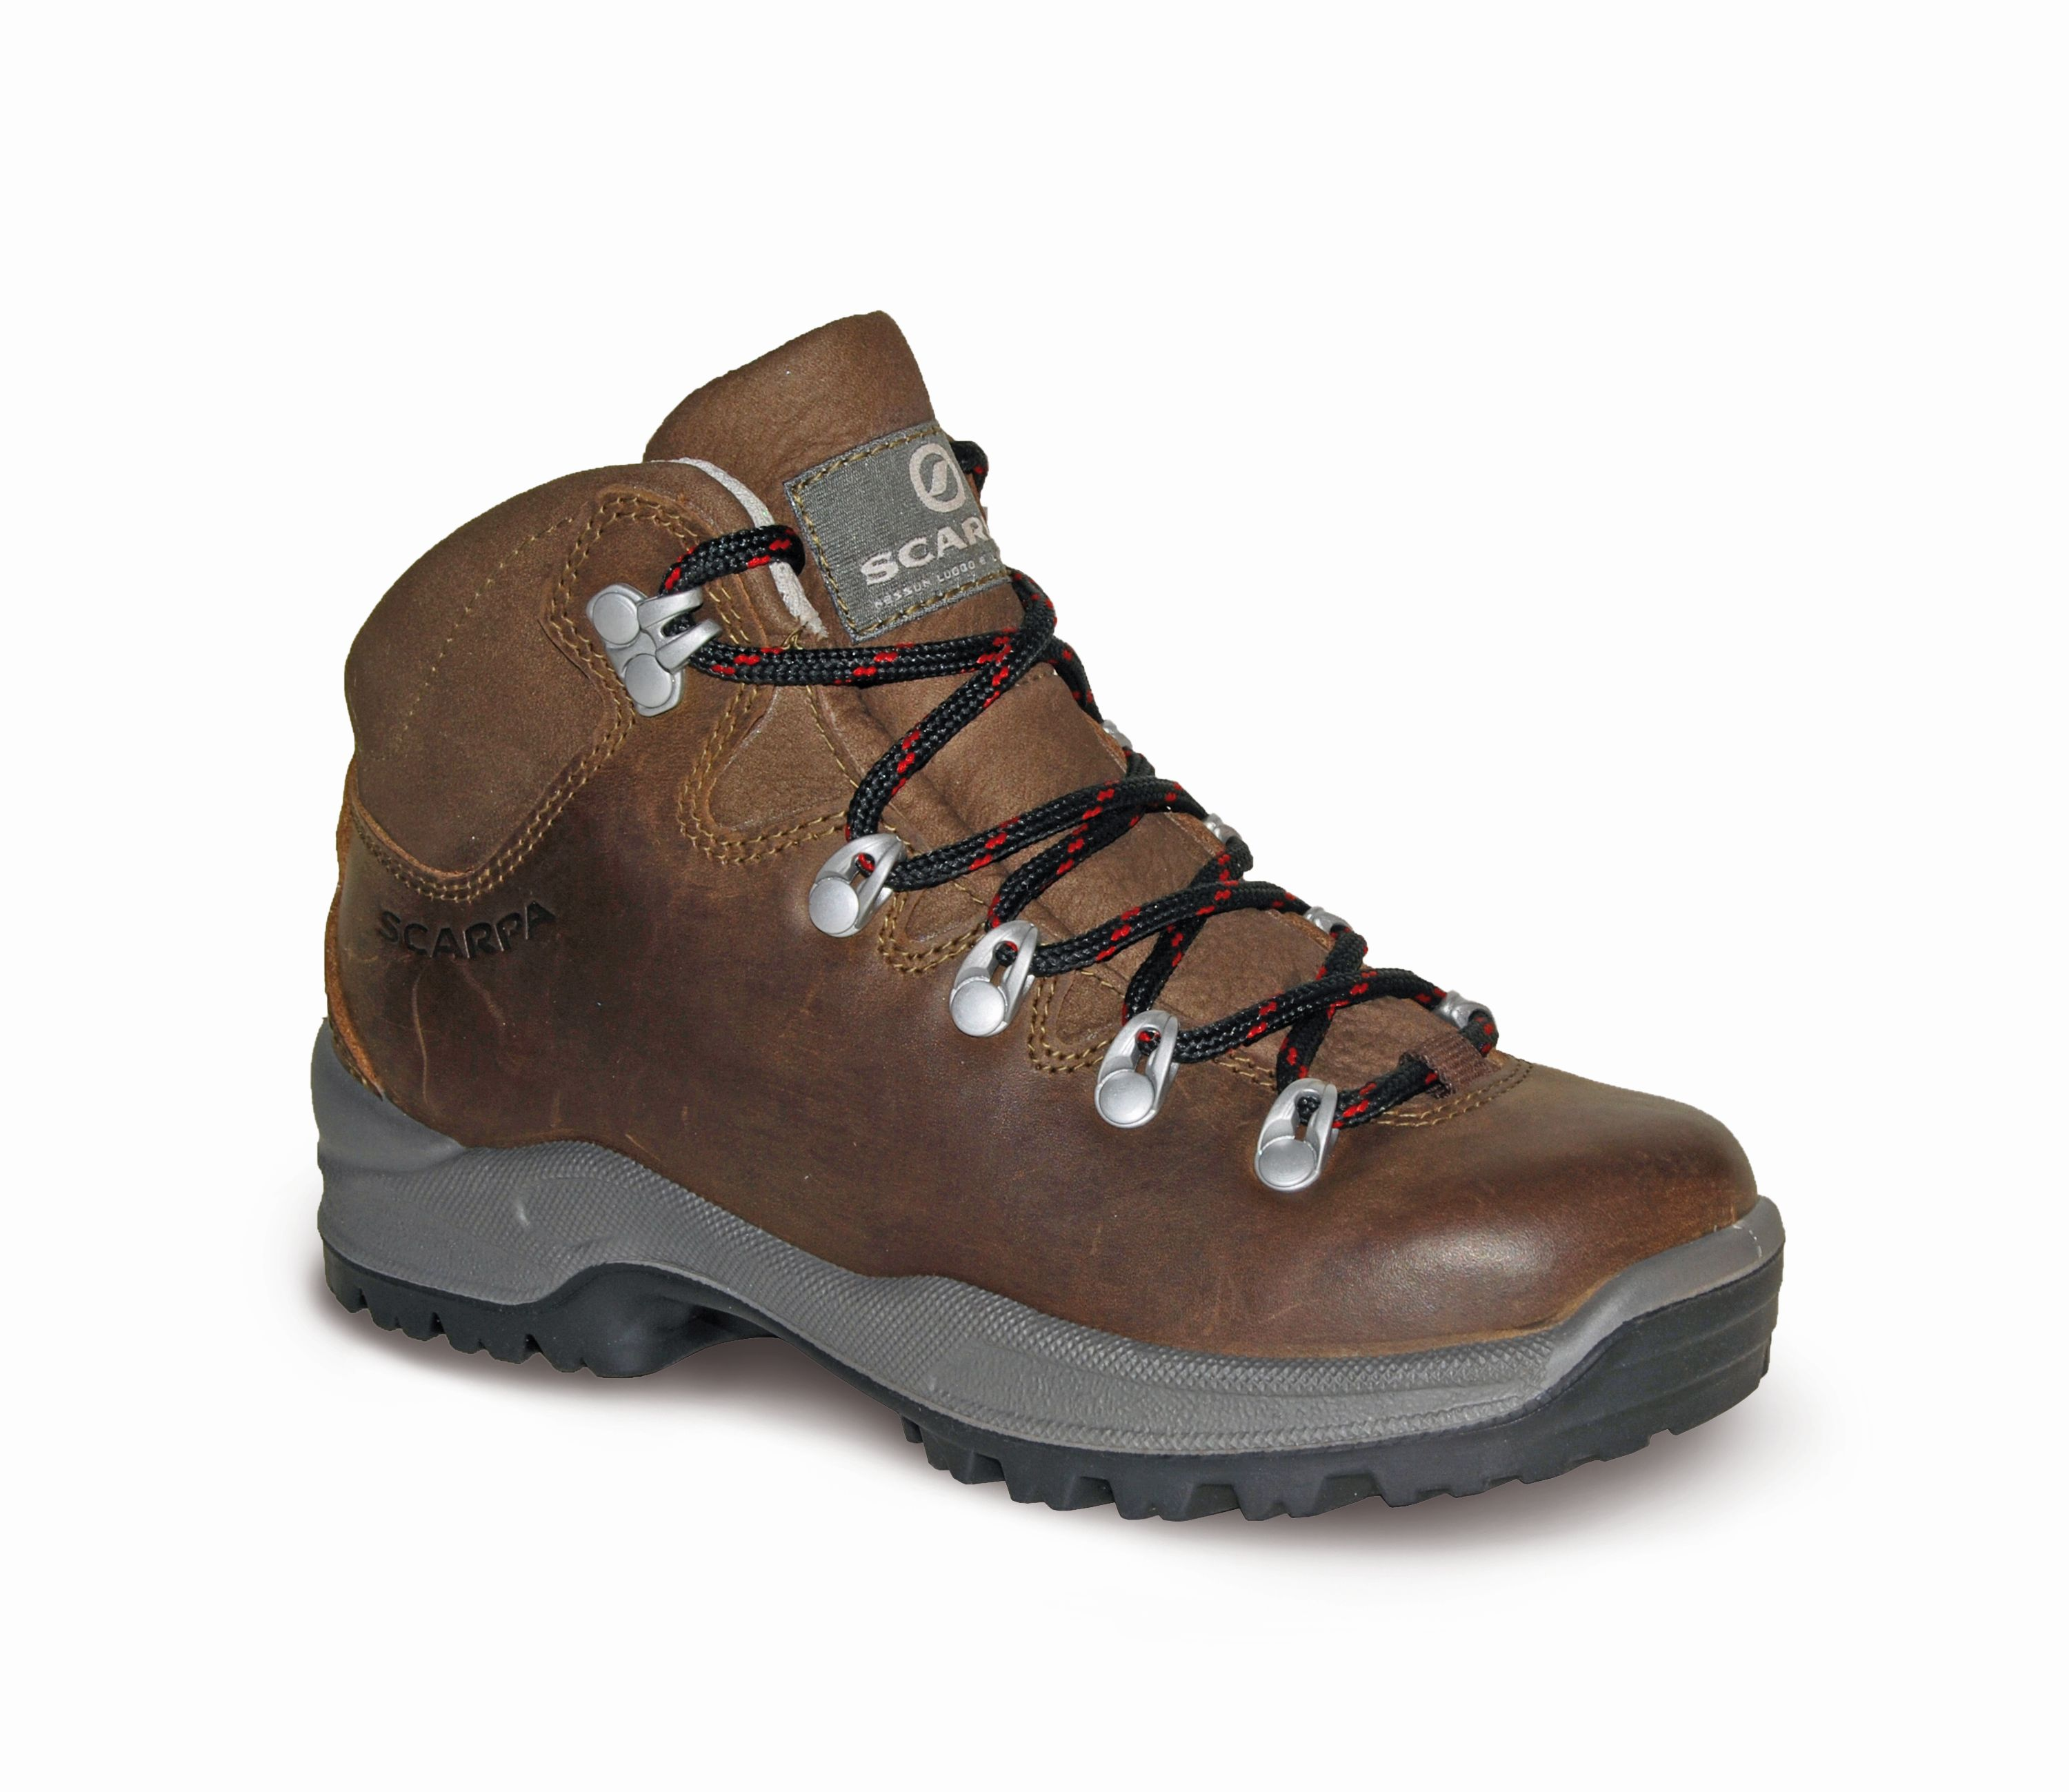 Scarpa Terra Kid brown-30